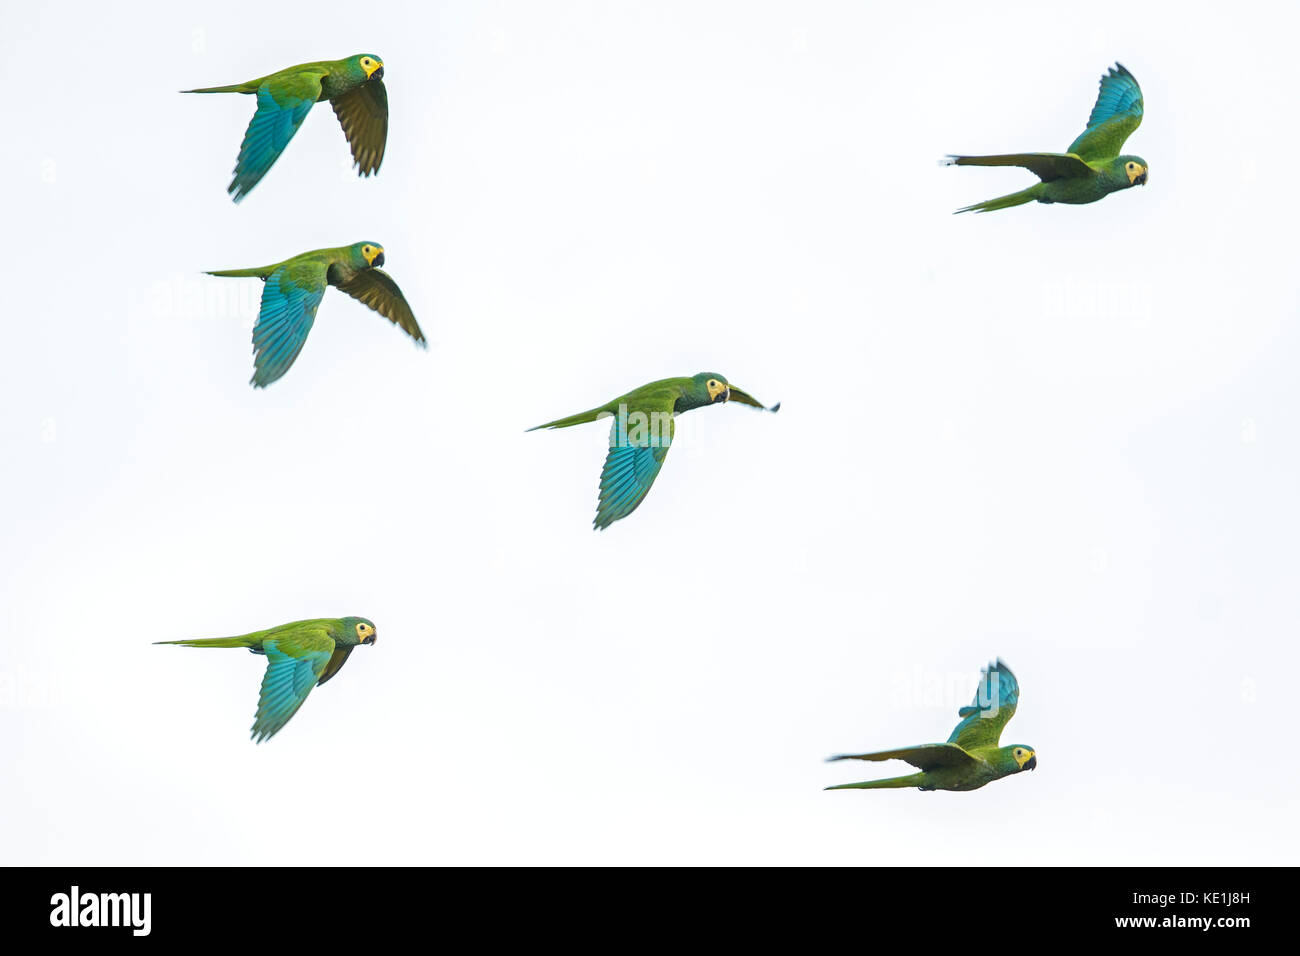 flying in the grasslands of Guyana. - Stock Image